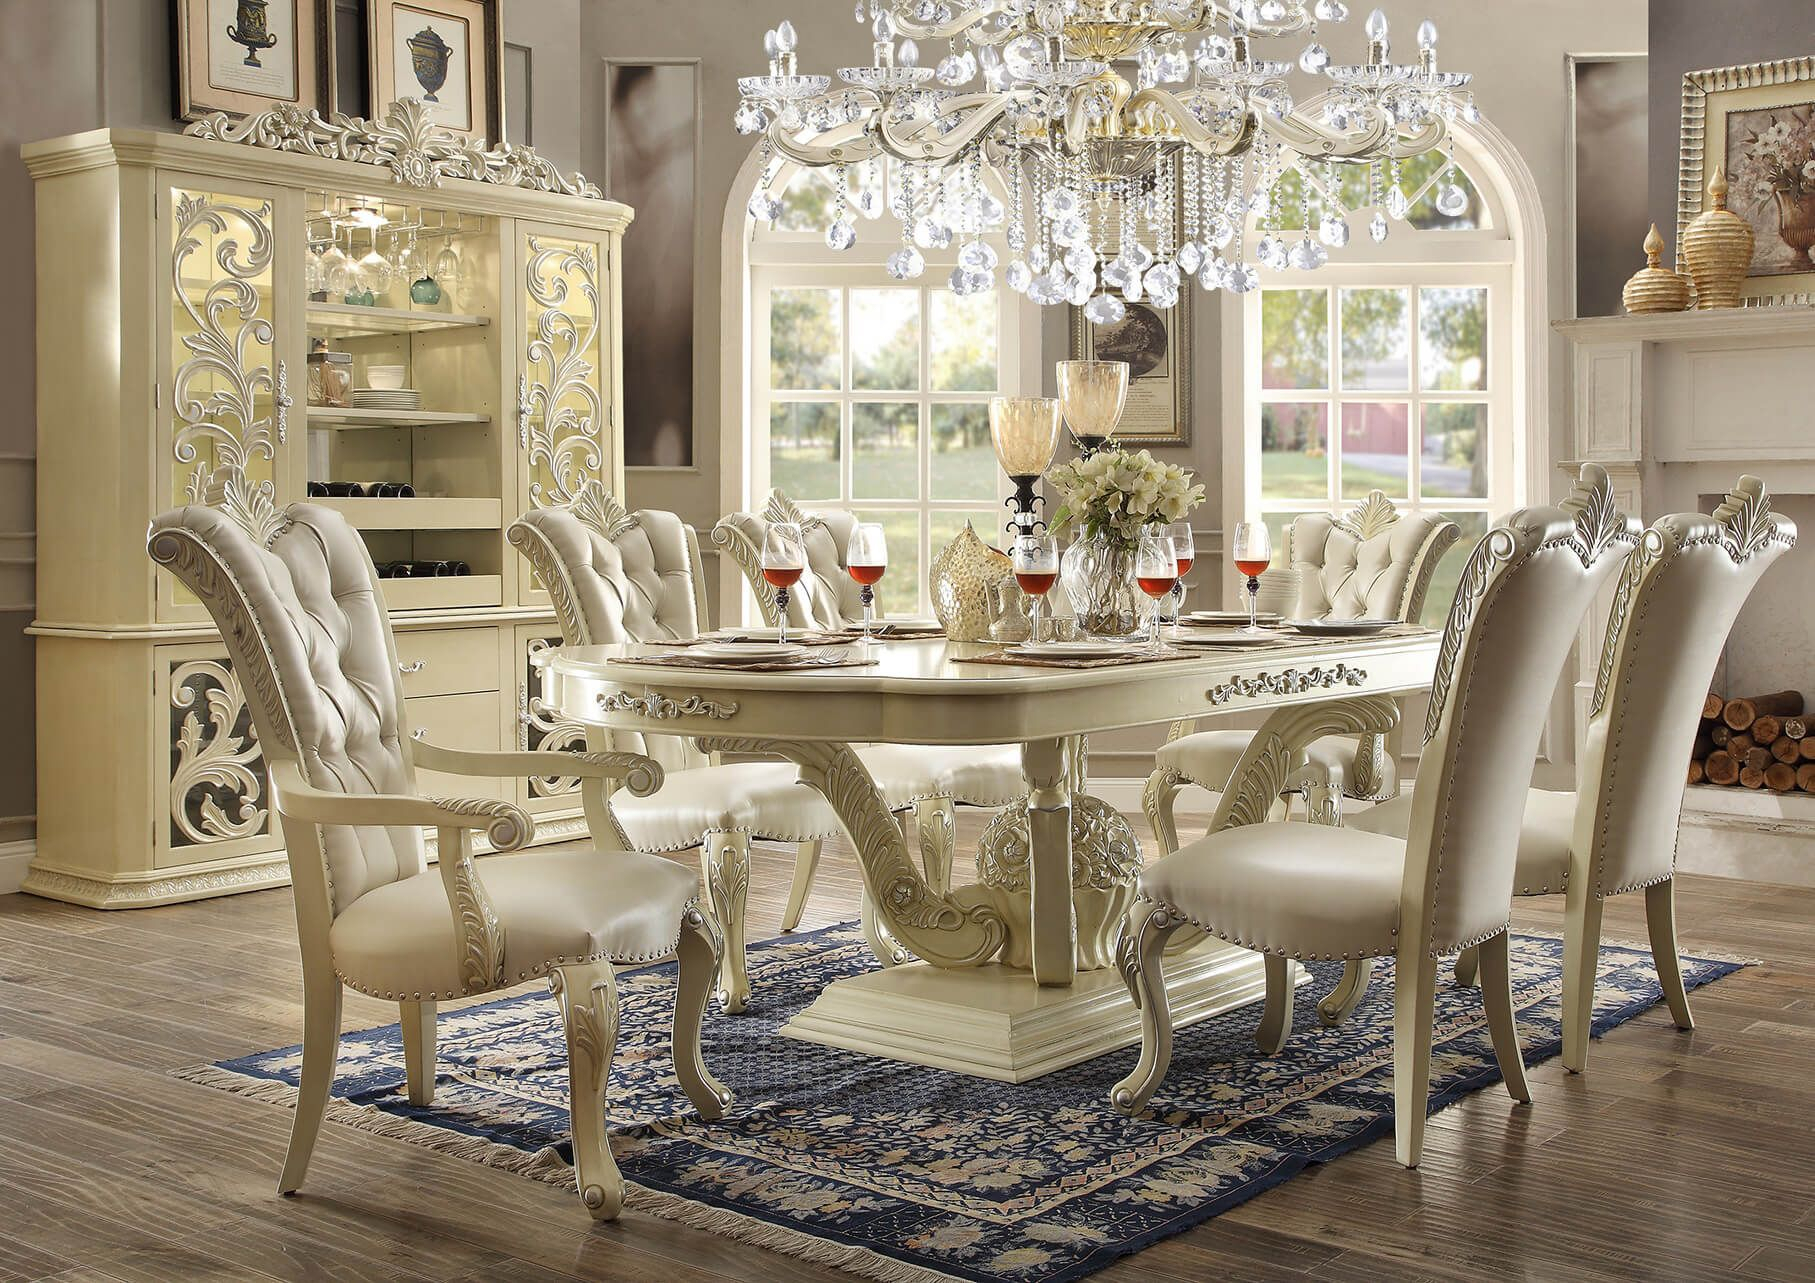 Well Known 9 Piece Homey Design Marbella Hd 27 Dining Set In (View 13 of 20)